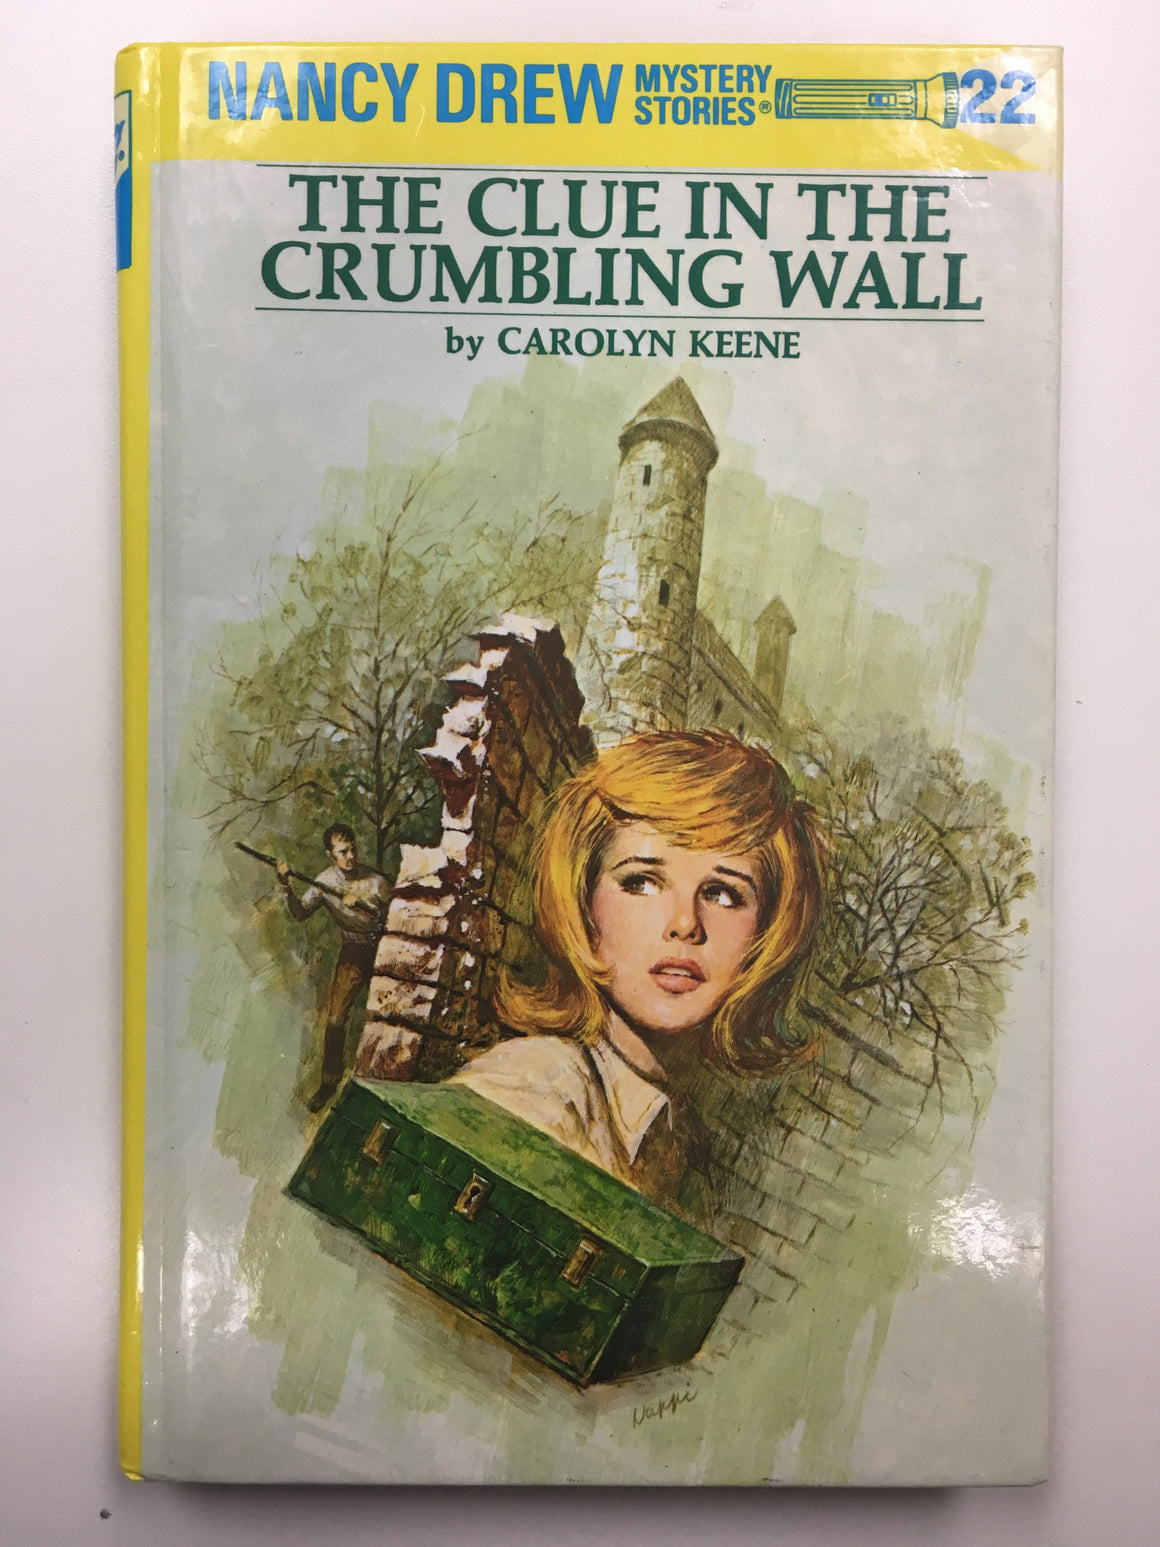 Nancy Drew #22 - The Clue in the Crumbling Wall-Red Barn Collections